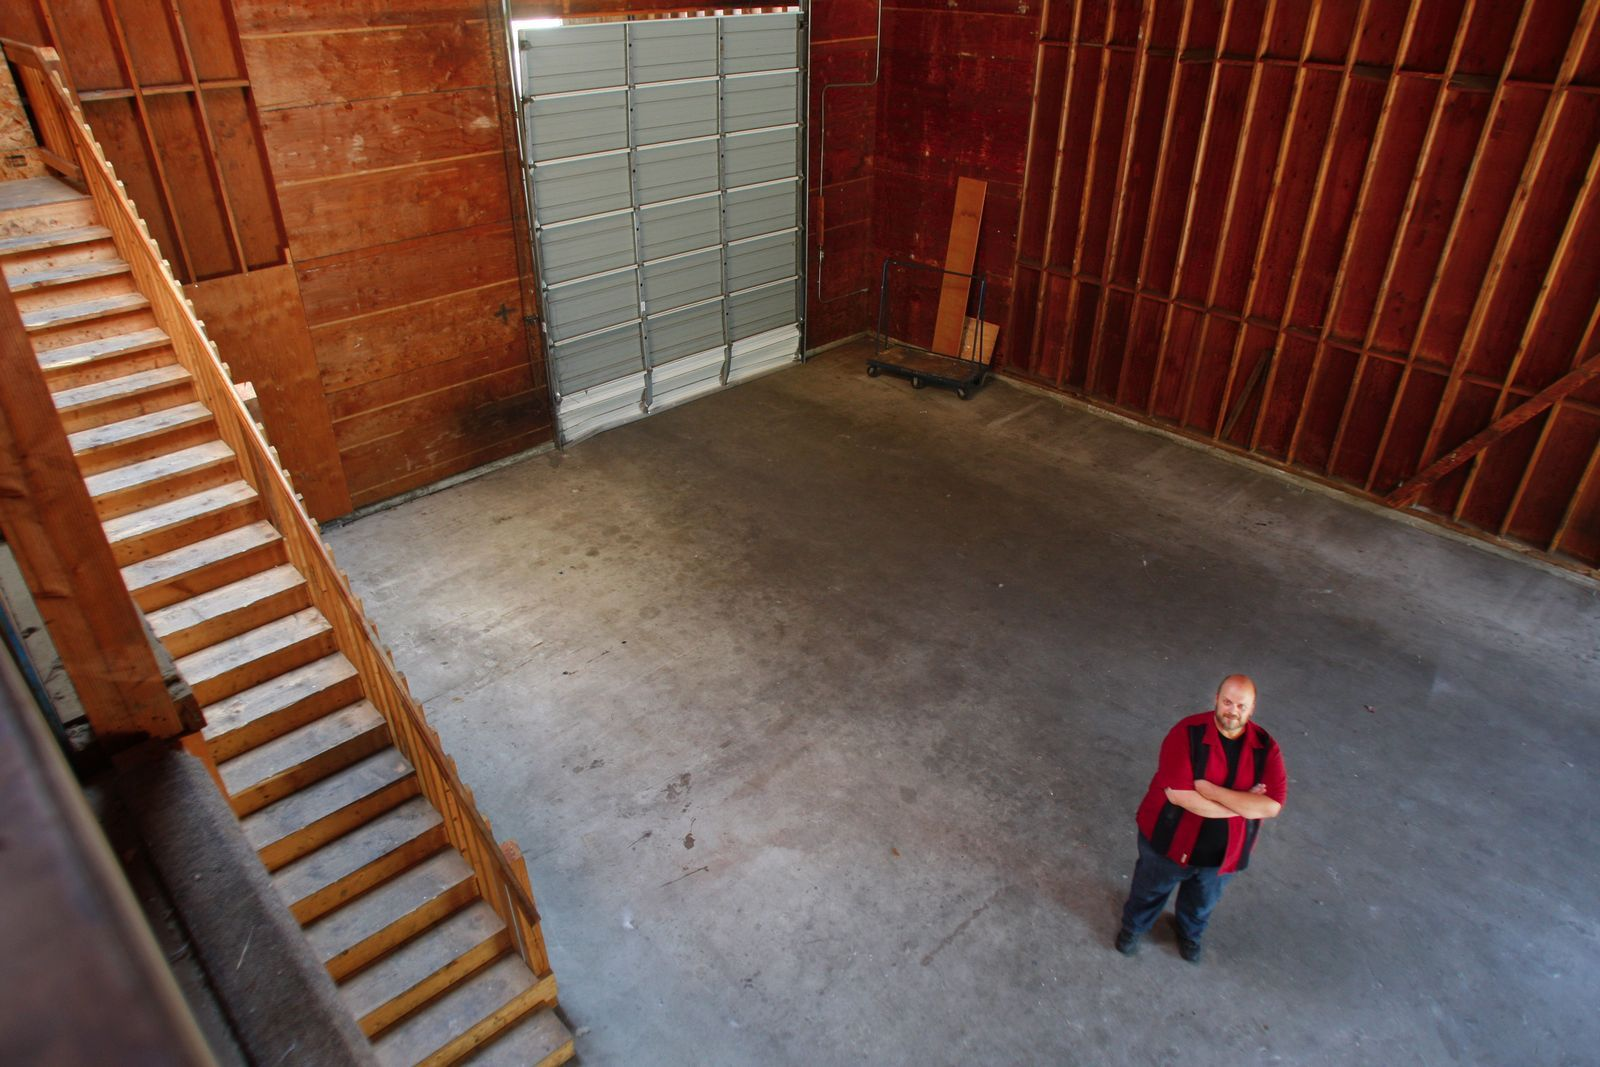 Sean Ryan / The HeraldScott Randall, a board member for the Red Curtain Foundation for the Arts says a former lumber store has the space the foundation needs for its programs in Marysville.